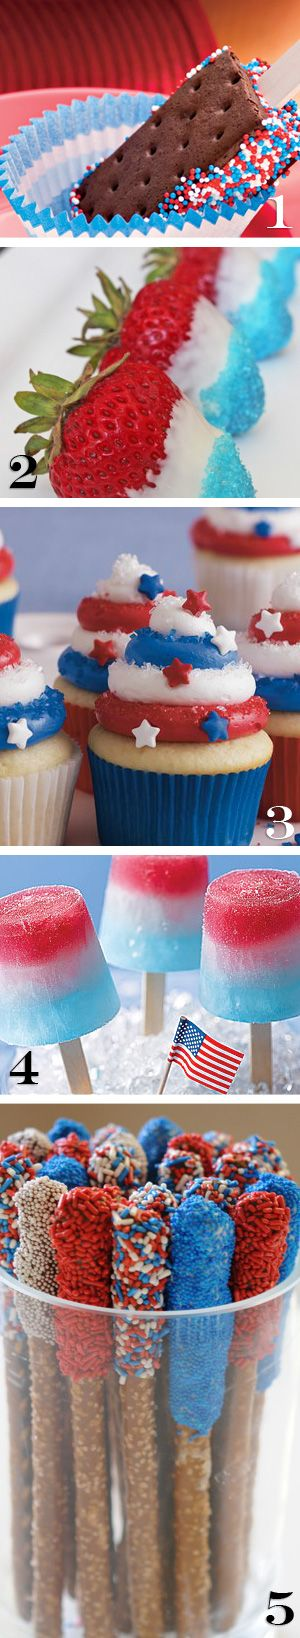 4th of july ideas 4th of july pinterest 4th of july for Fourth of july party dessert ideas